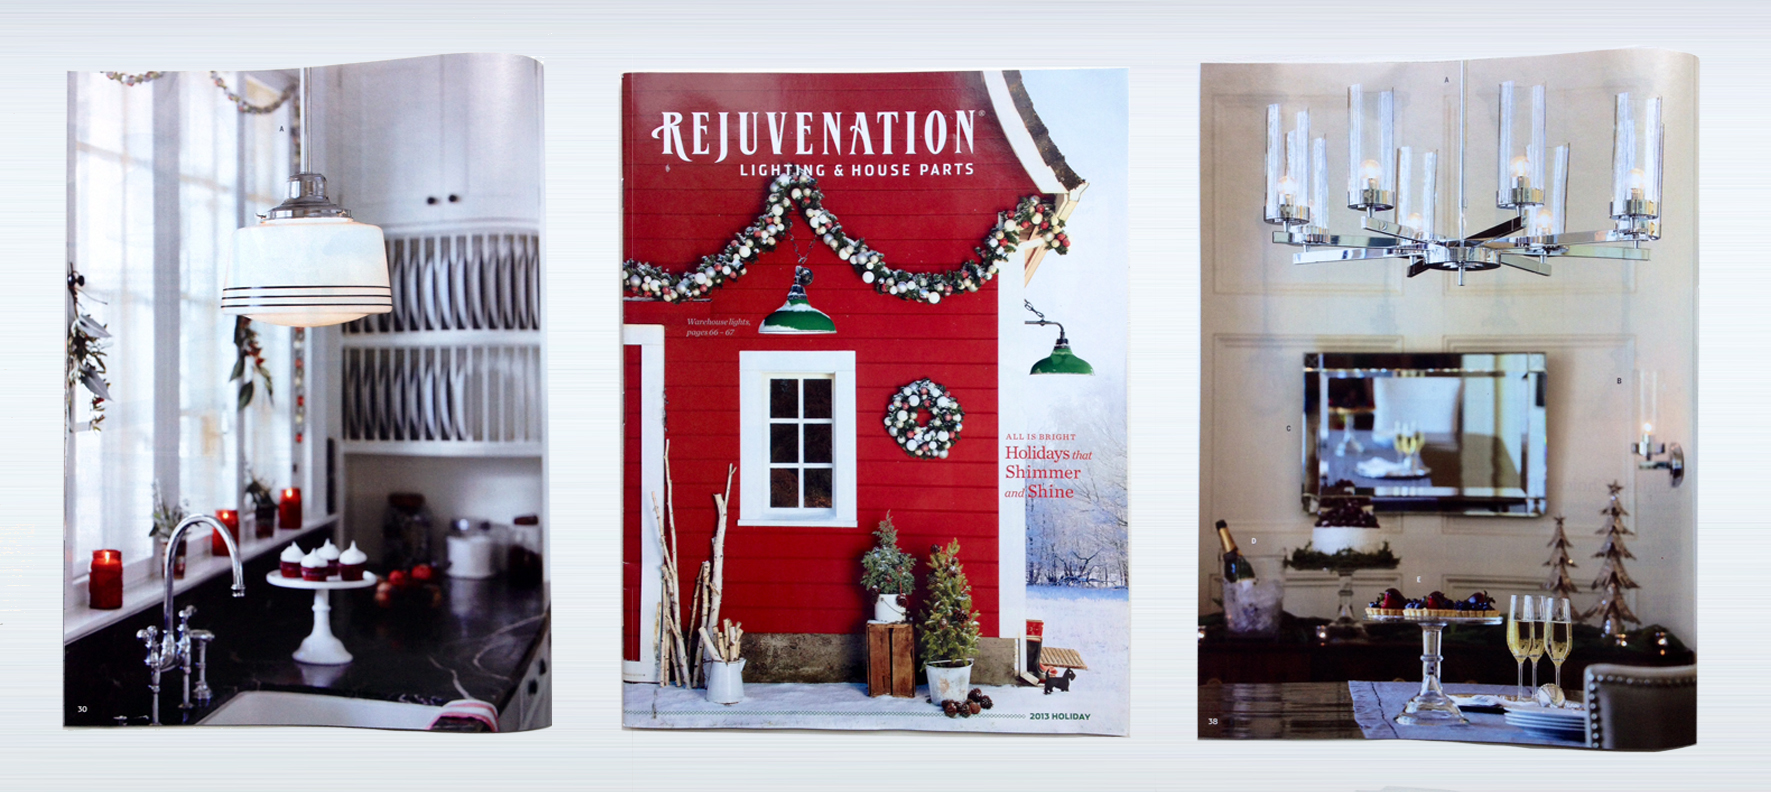 Rejuvenation - Direct Mail Retail